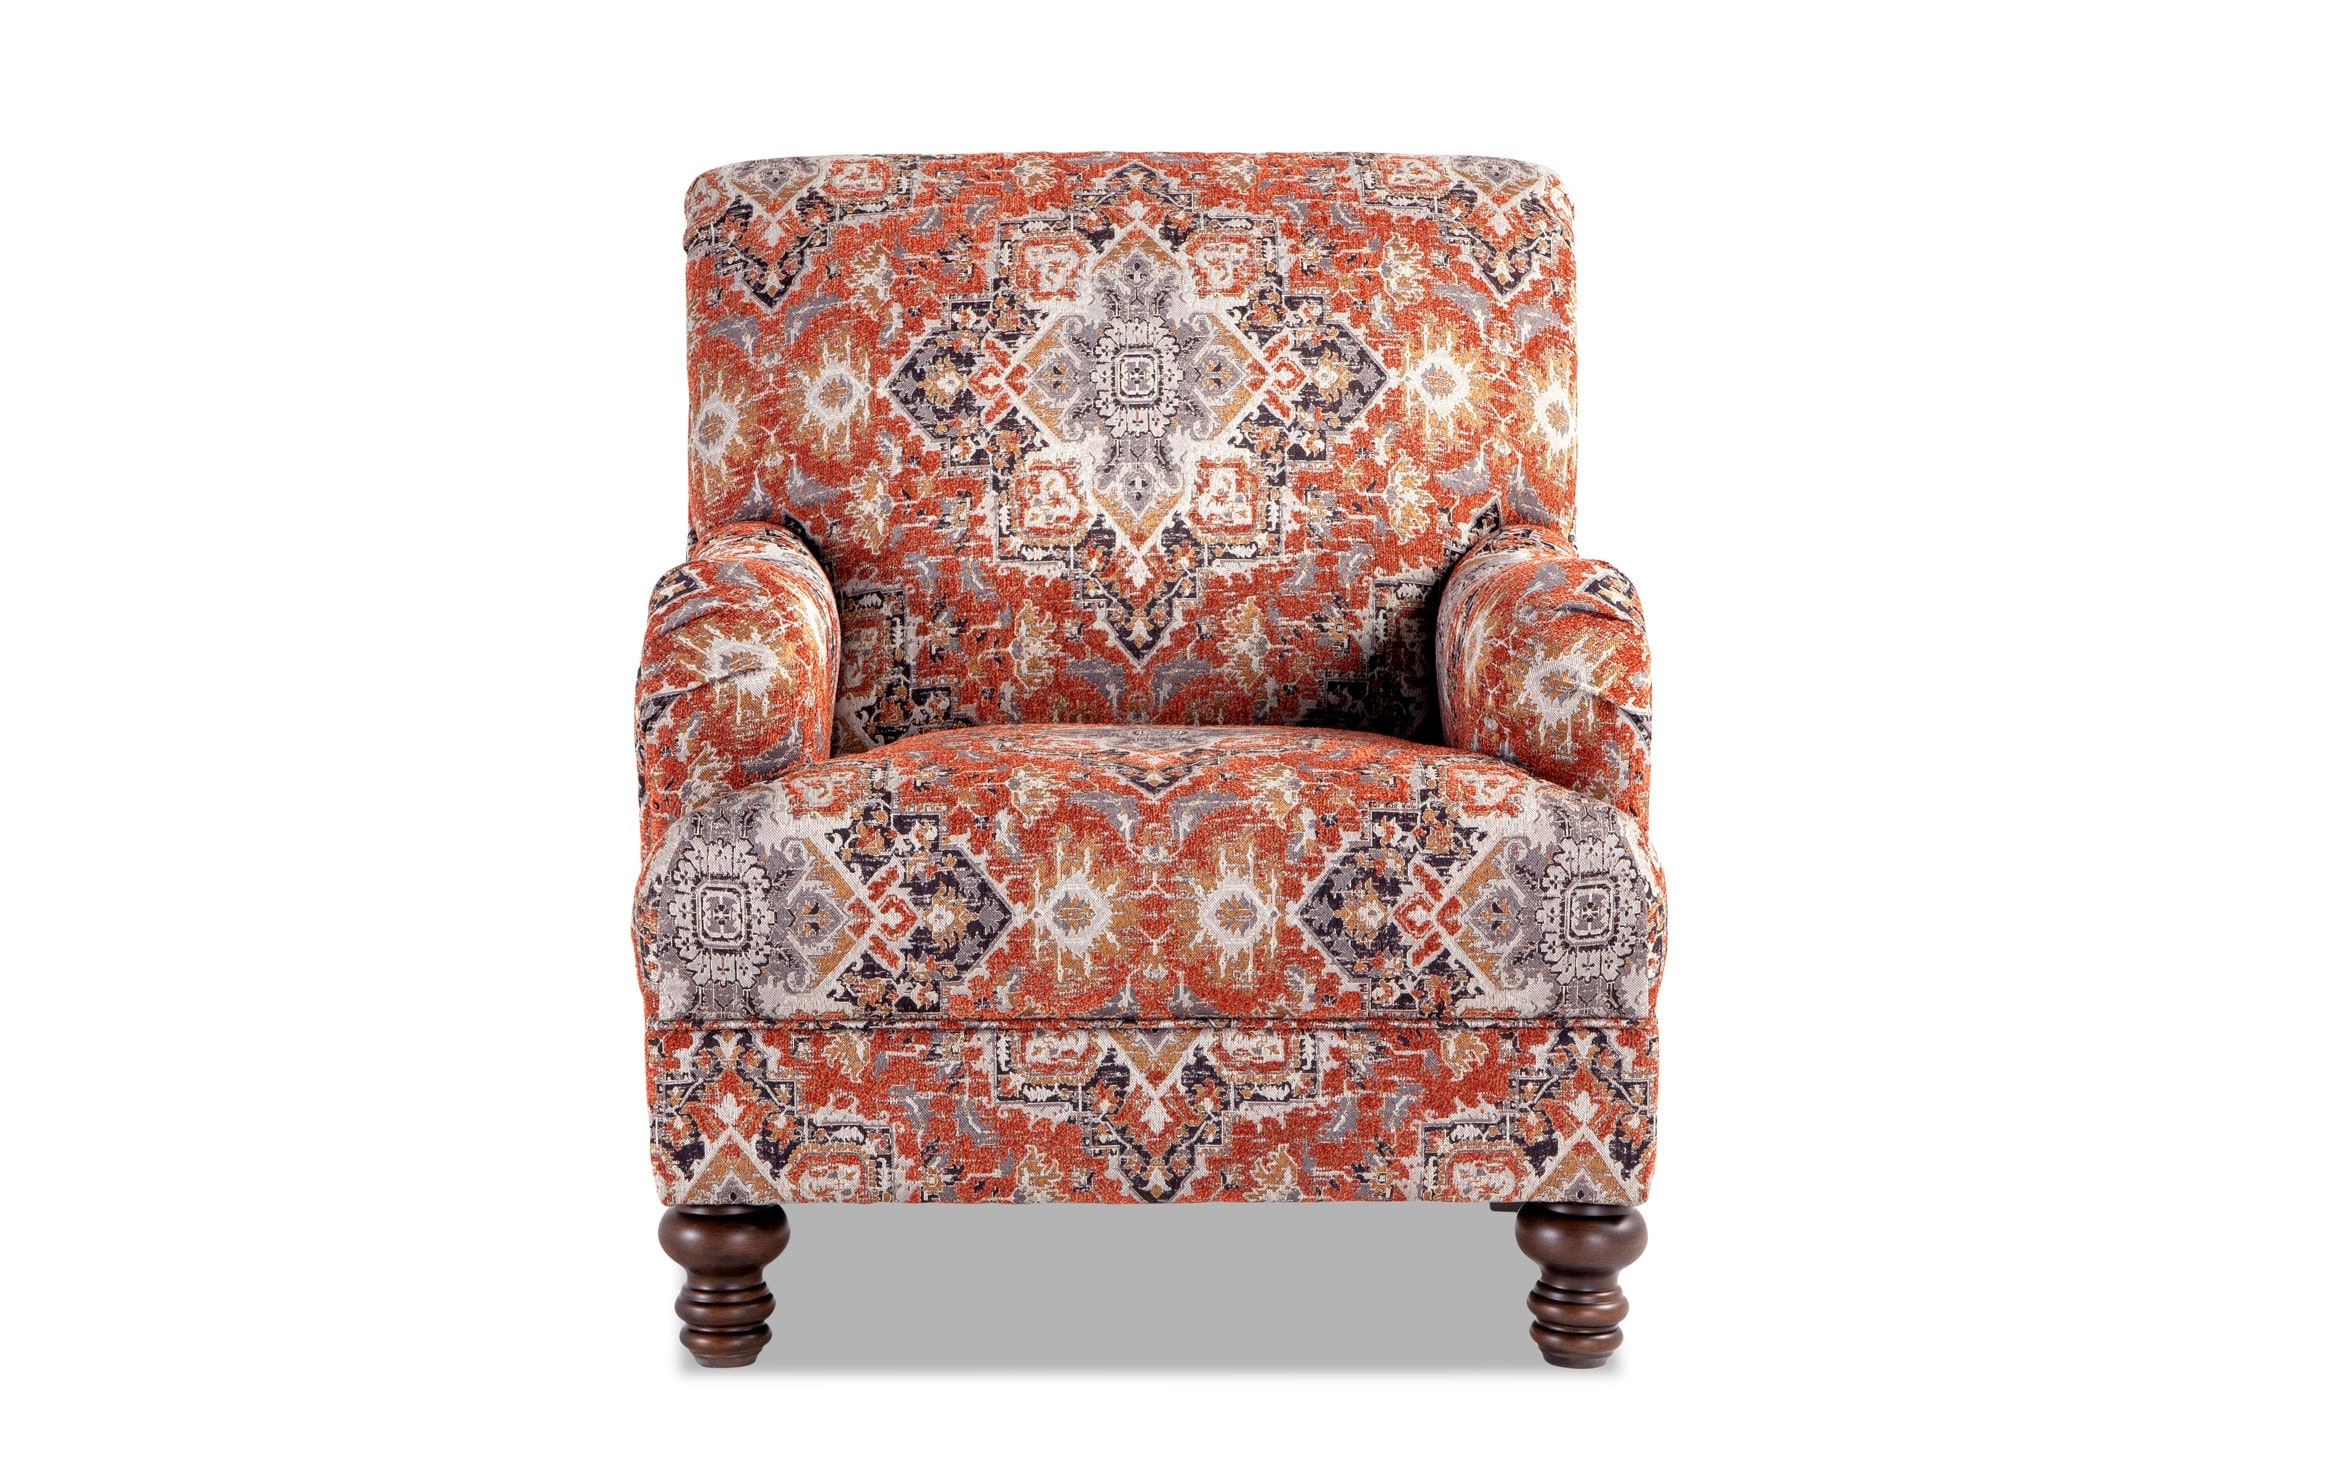 Awesome Chair Bobs Furniture